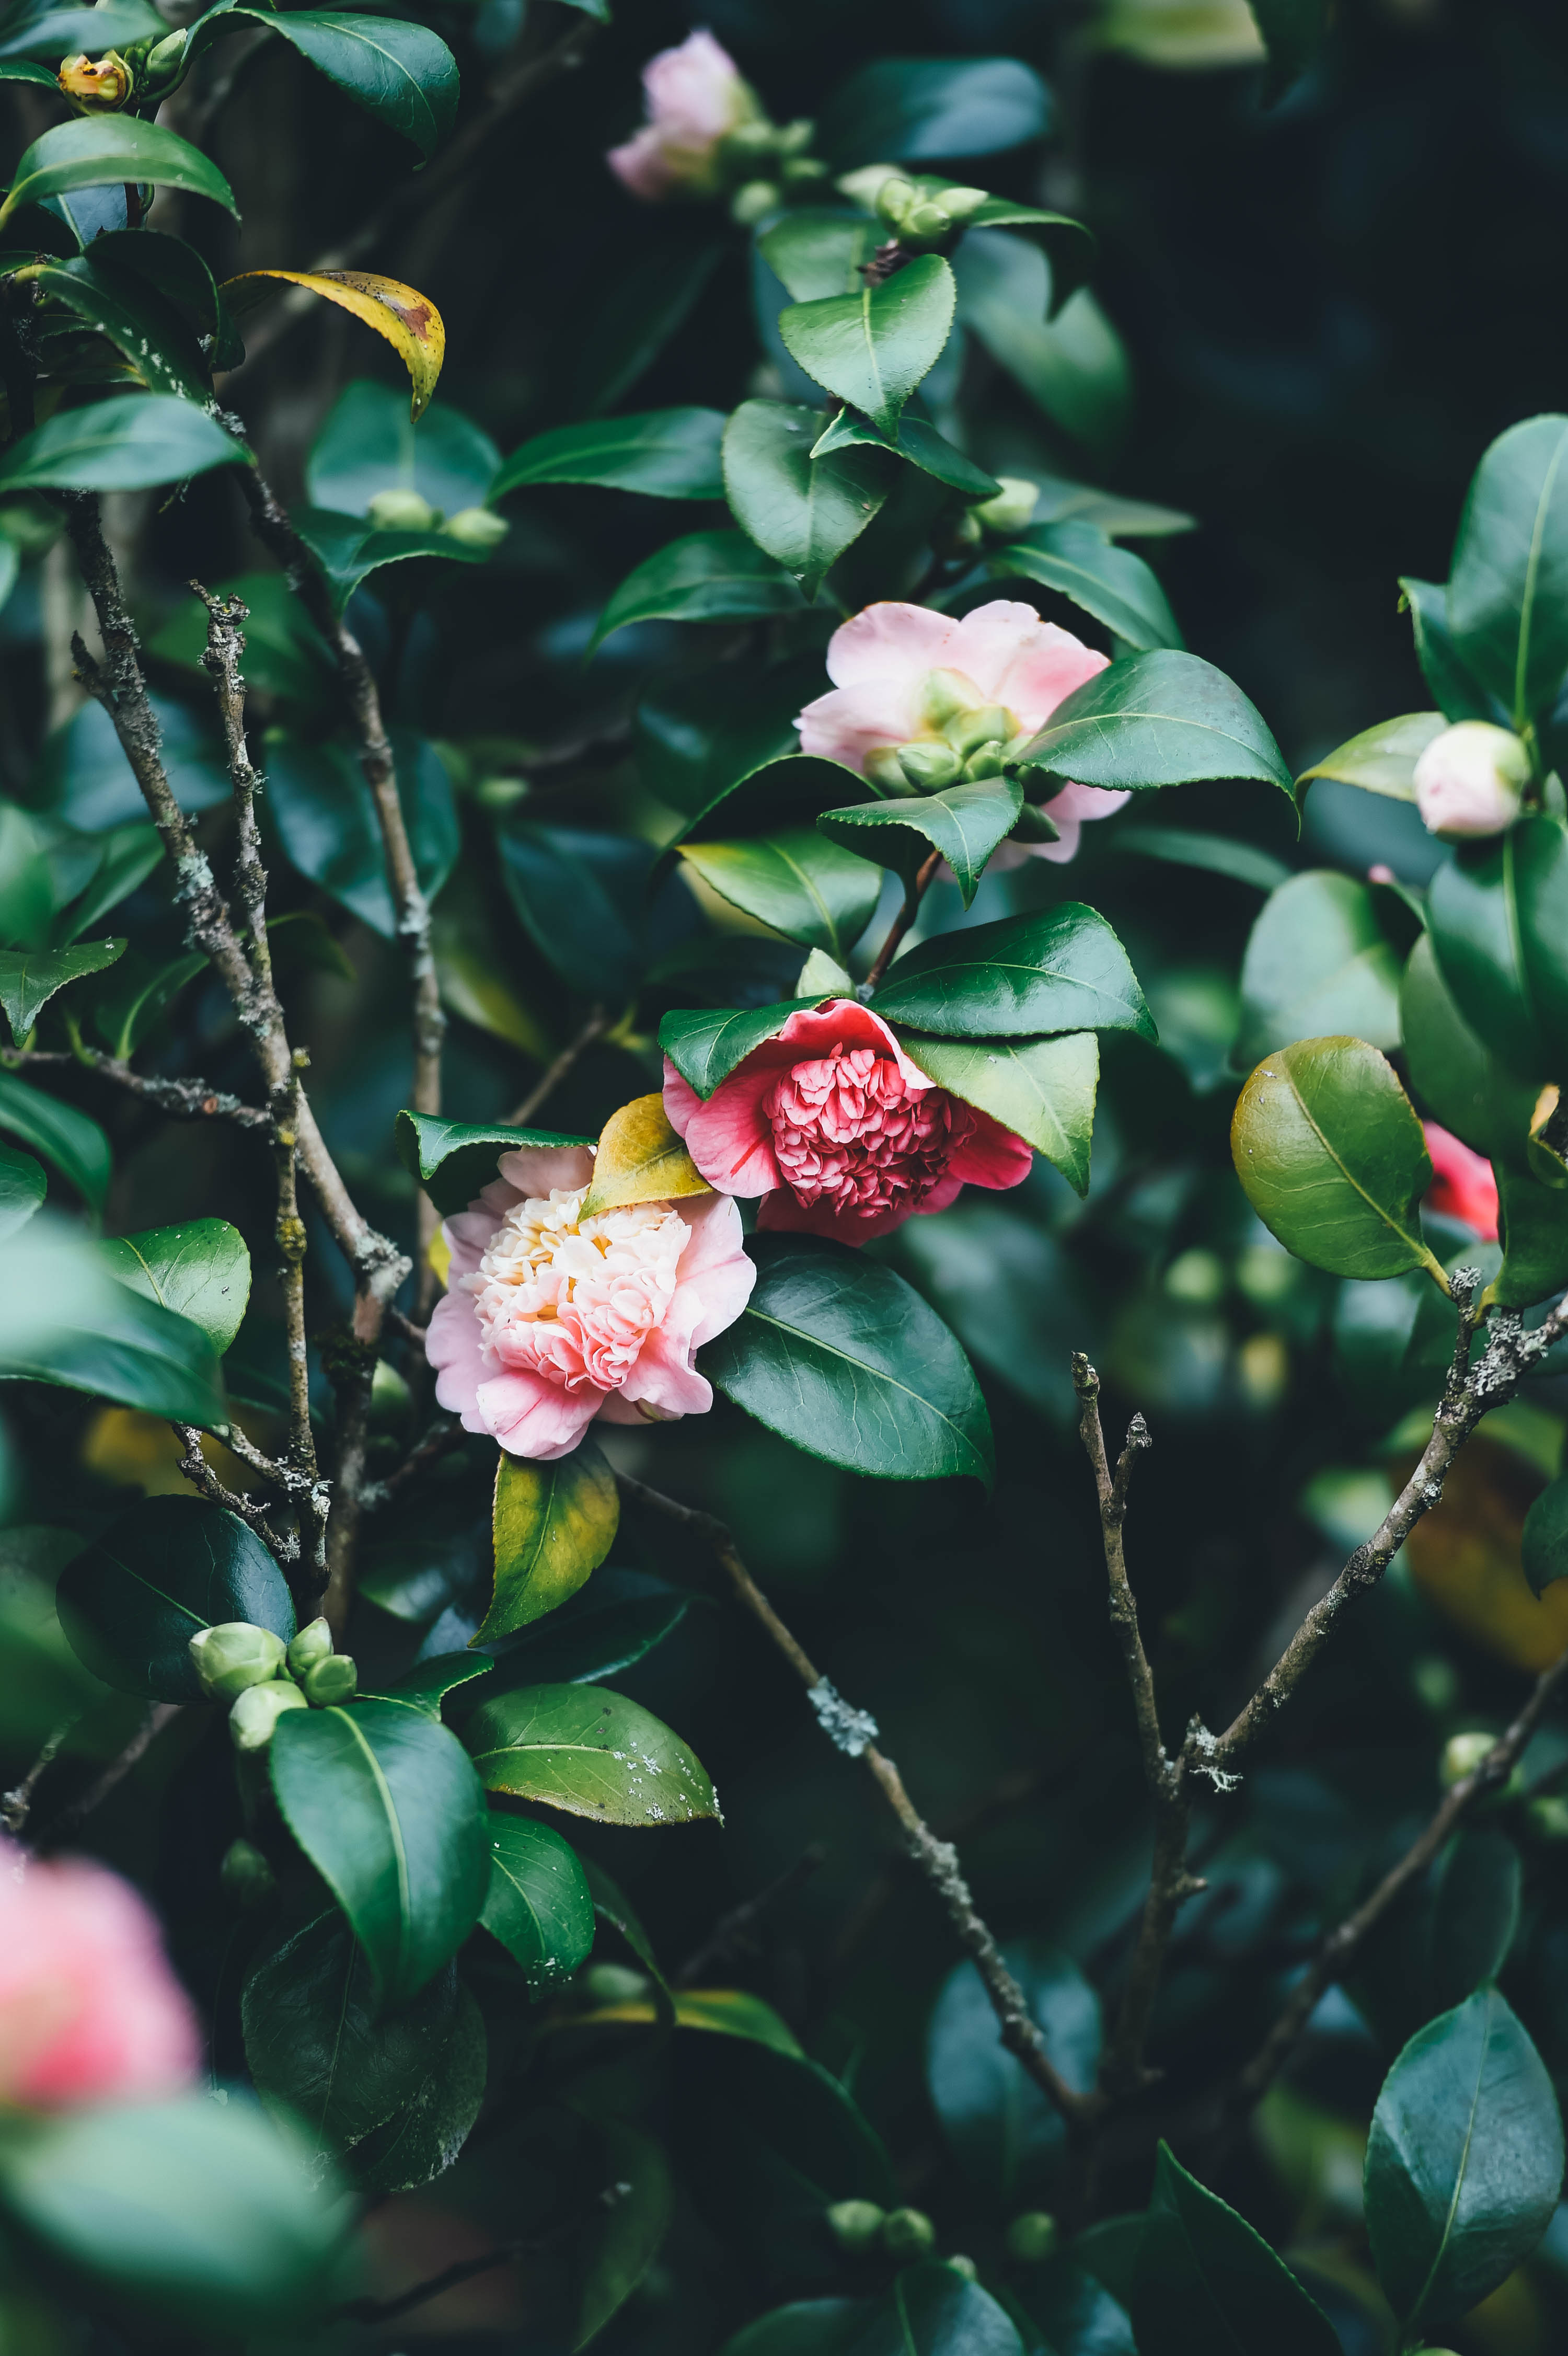 High Hd Wallpaper Download Flower Plant Pink And Blossom Hd Photo By Annie Spratt